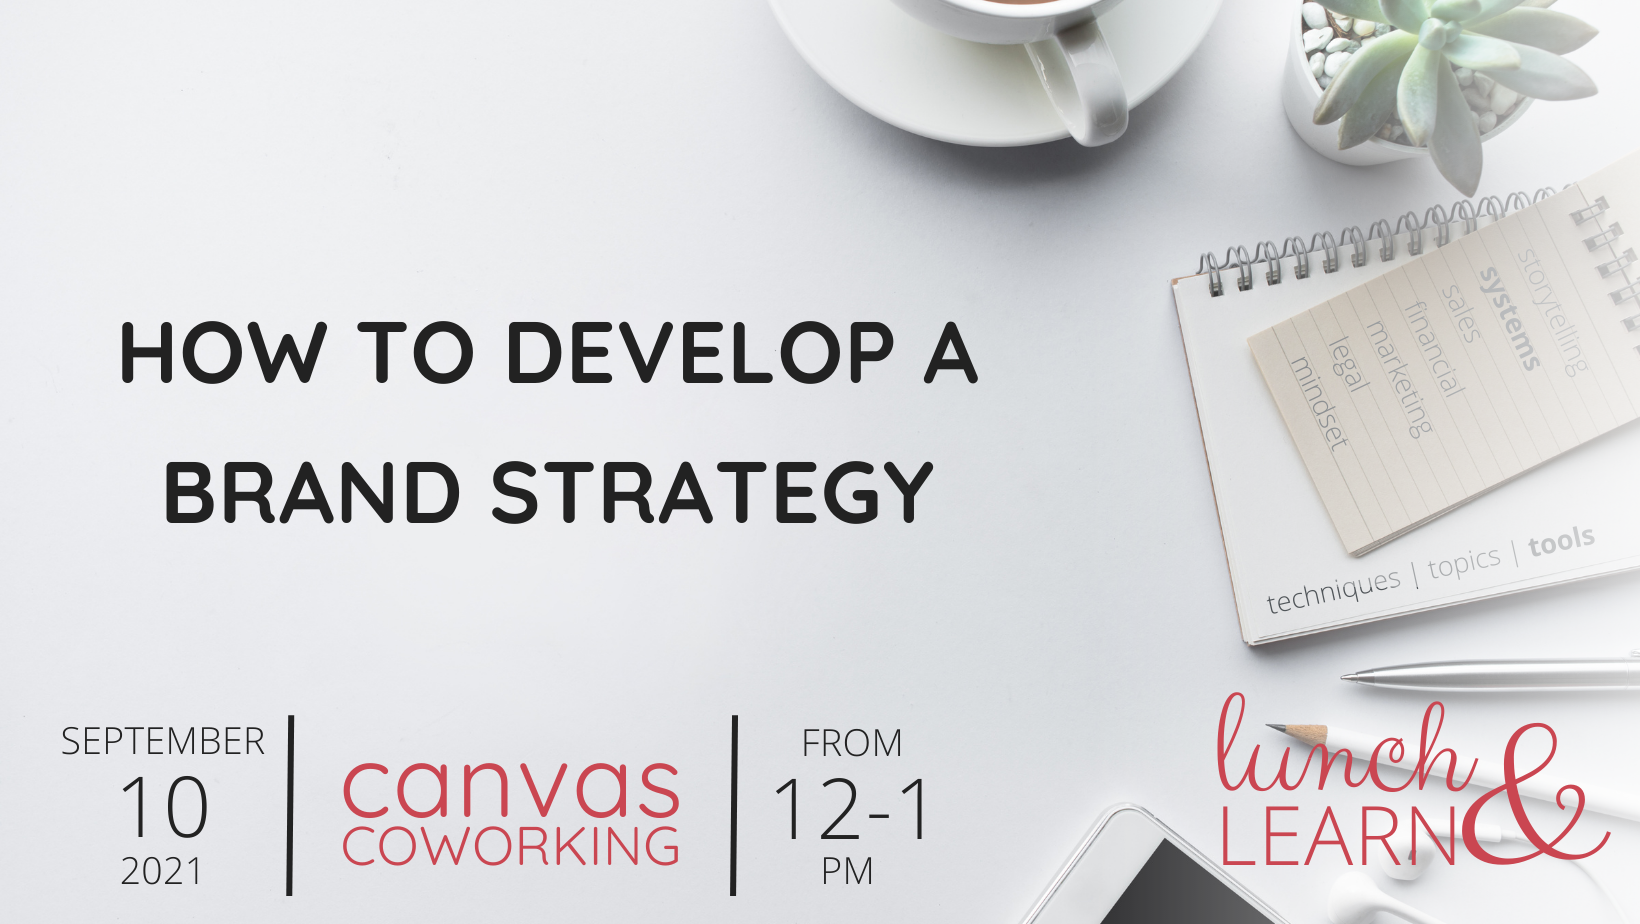 Lunch&Learn - How to Develop a Brand Strategy